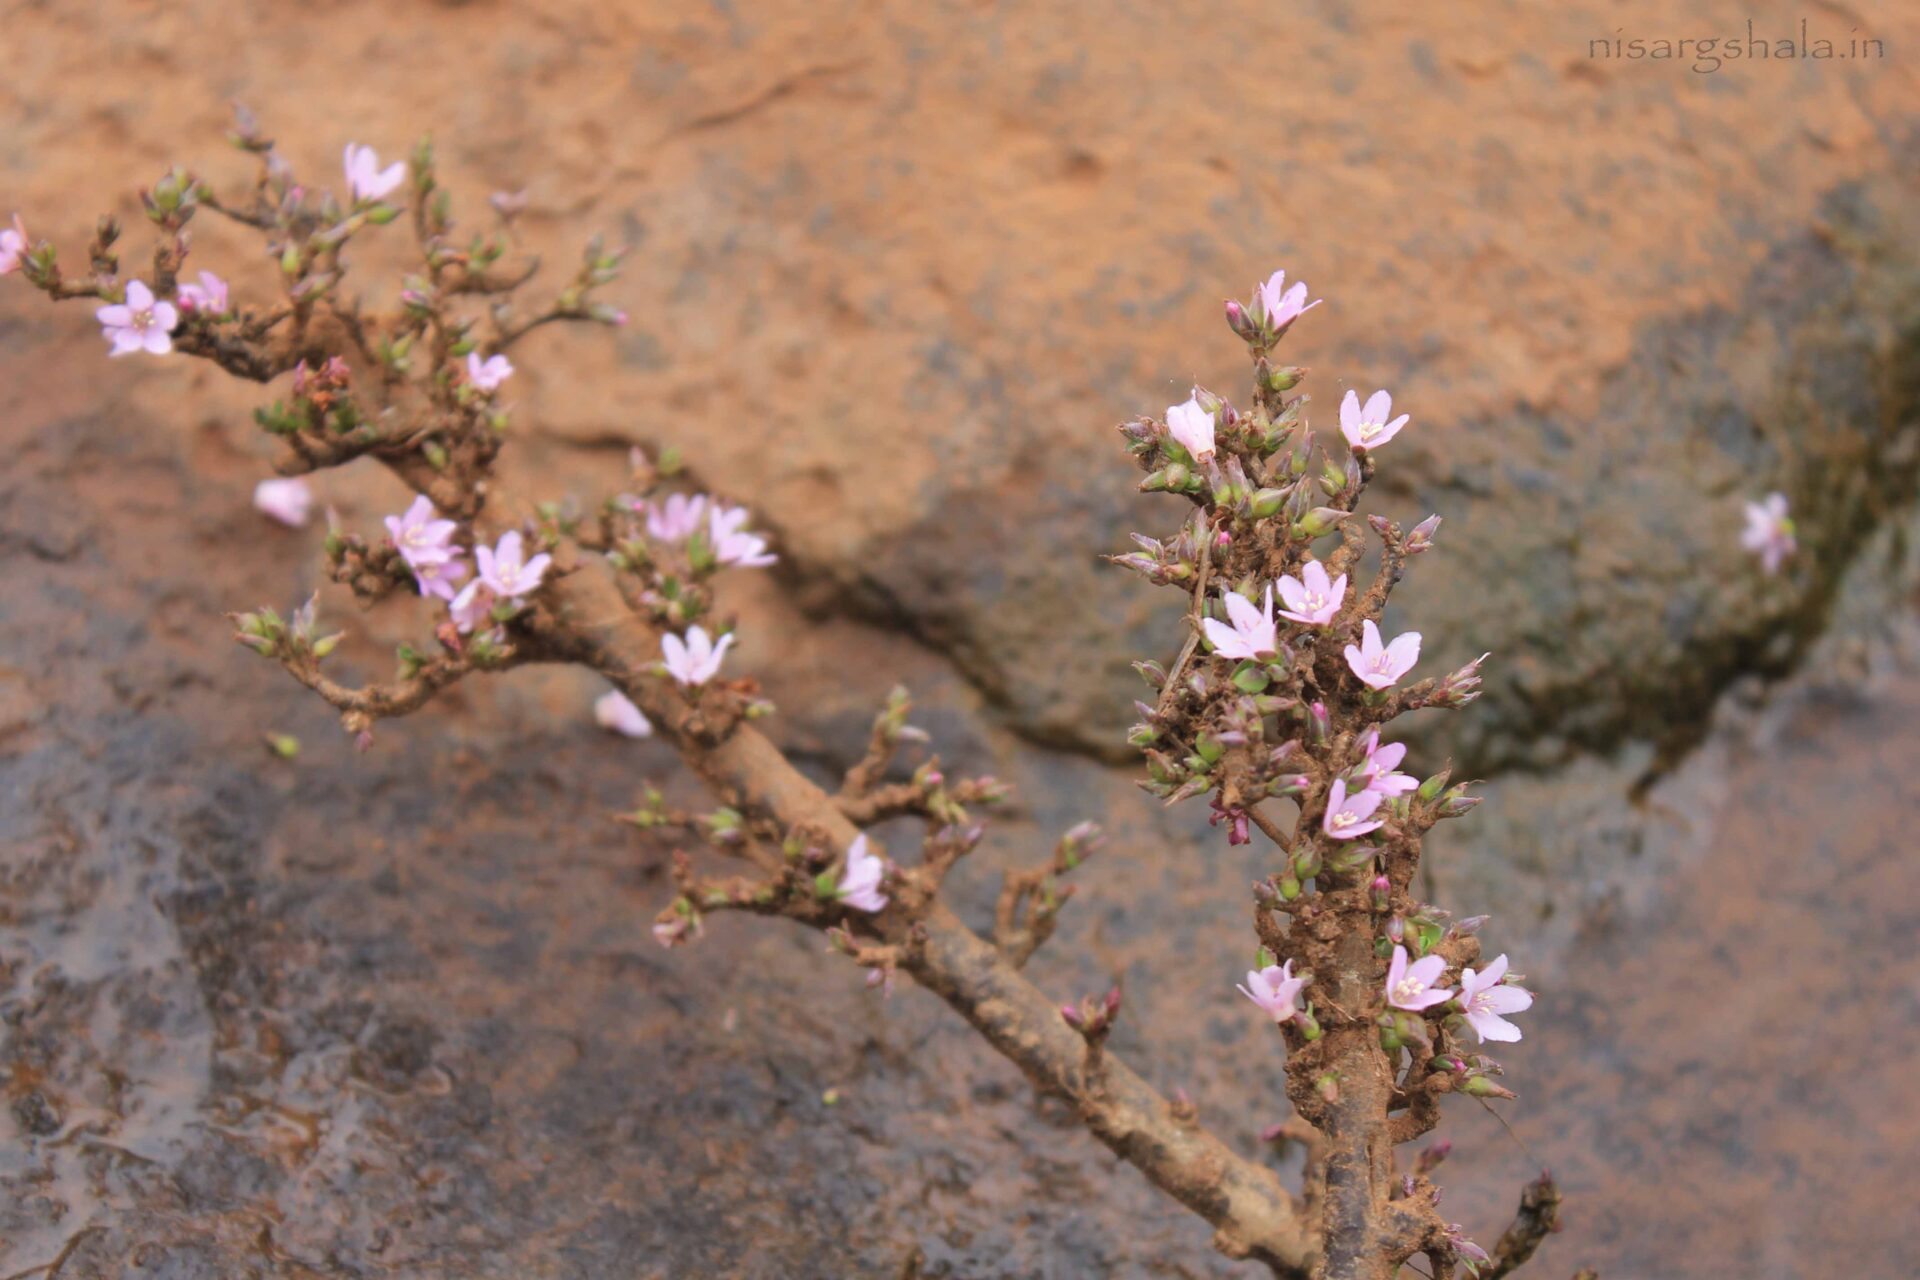 A plant bearing flowers in the riverbed near camp site